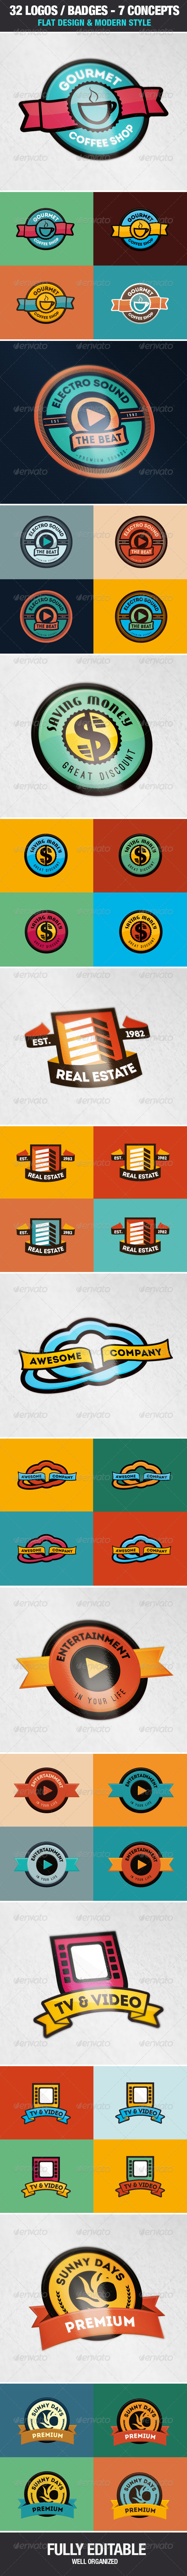 GraphicRiver 32 Badges Logos 7 Styles Flat Design 7094765